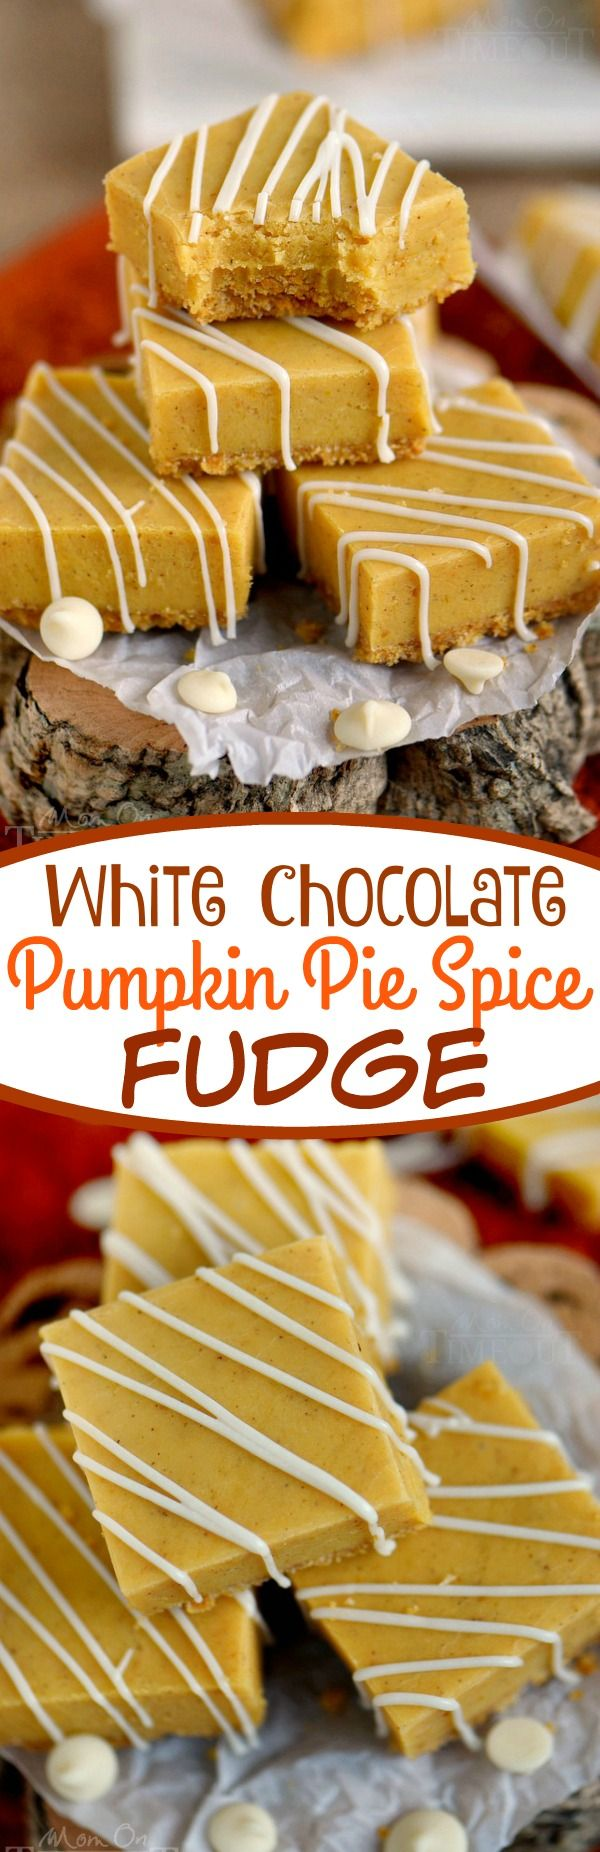 This delightful White Chocolate Pumpkin Pie Spice Fudge is made with real pumpkin, a graham cracker crust, and is topped with a white chocolate drizzle - perfection! Be sure to make a batch for friends and family this year! // Mom On Timeout #pumpkin #fudge #recipe #recipes #chocolate #Thanksgiving #Christmas  #holiday